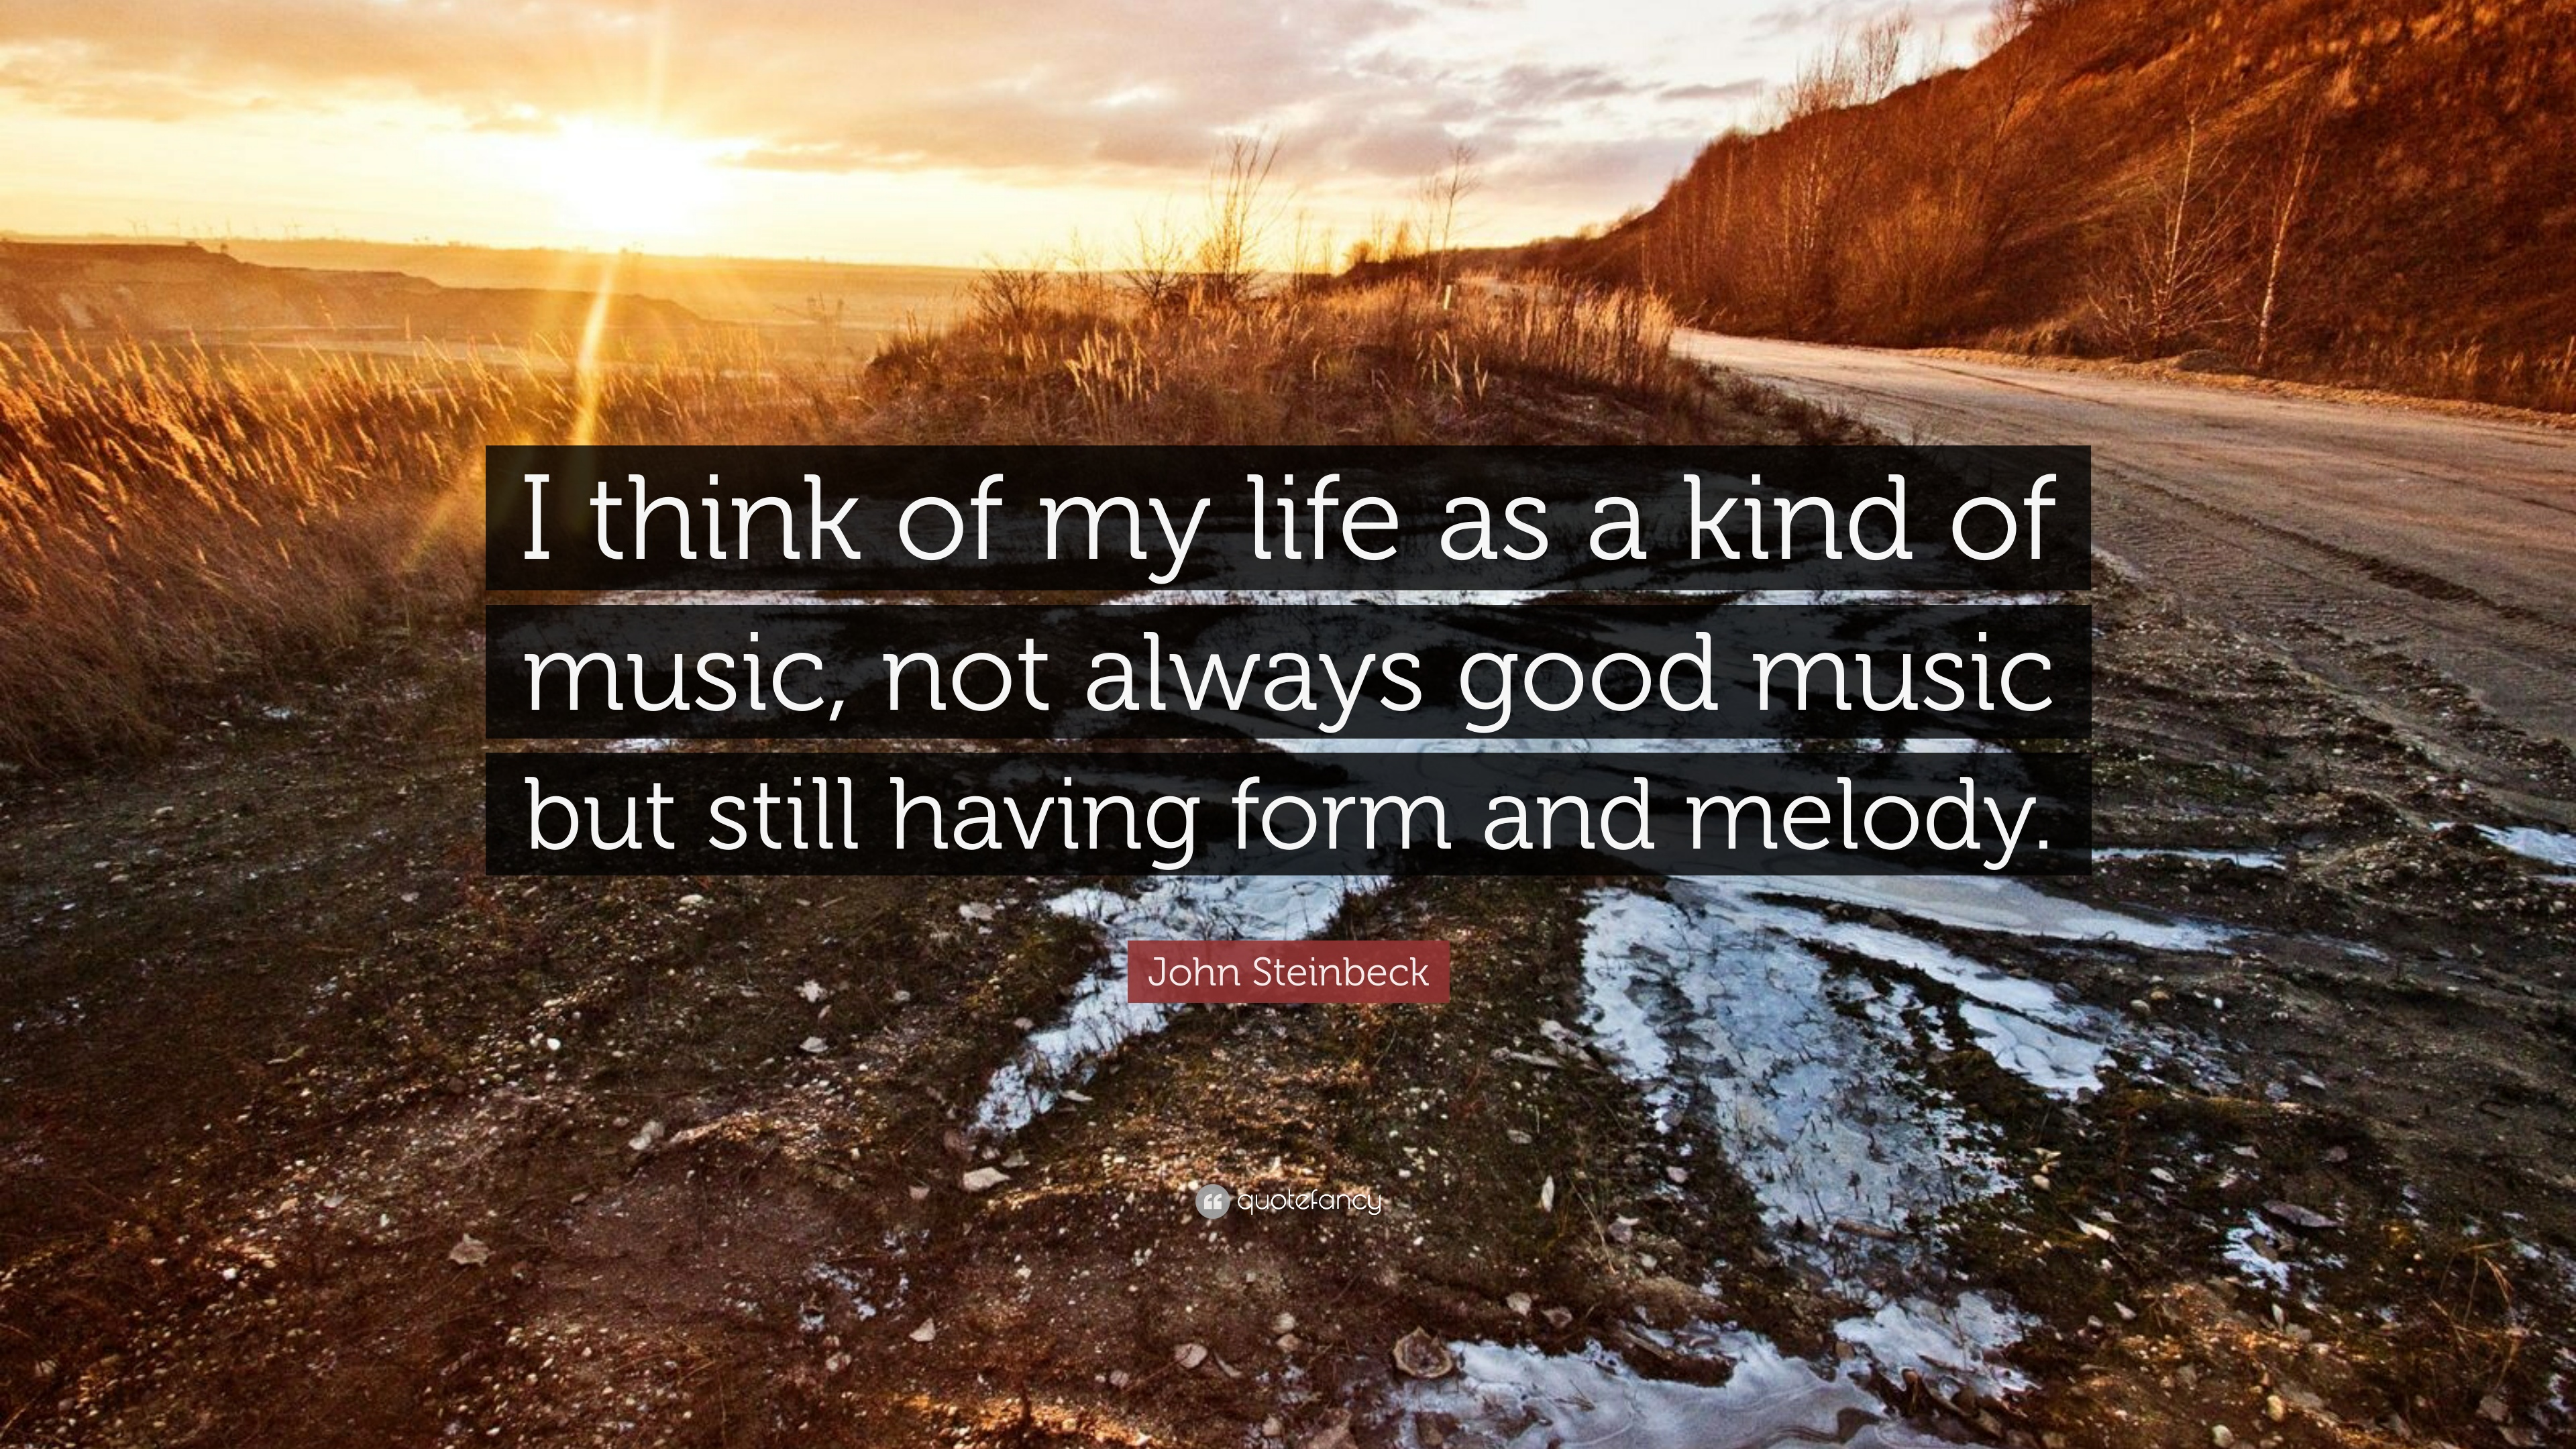 Good music is not to be confused with...?